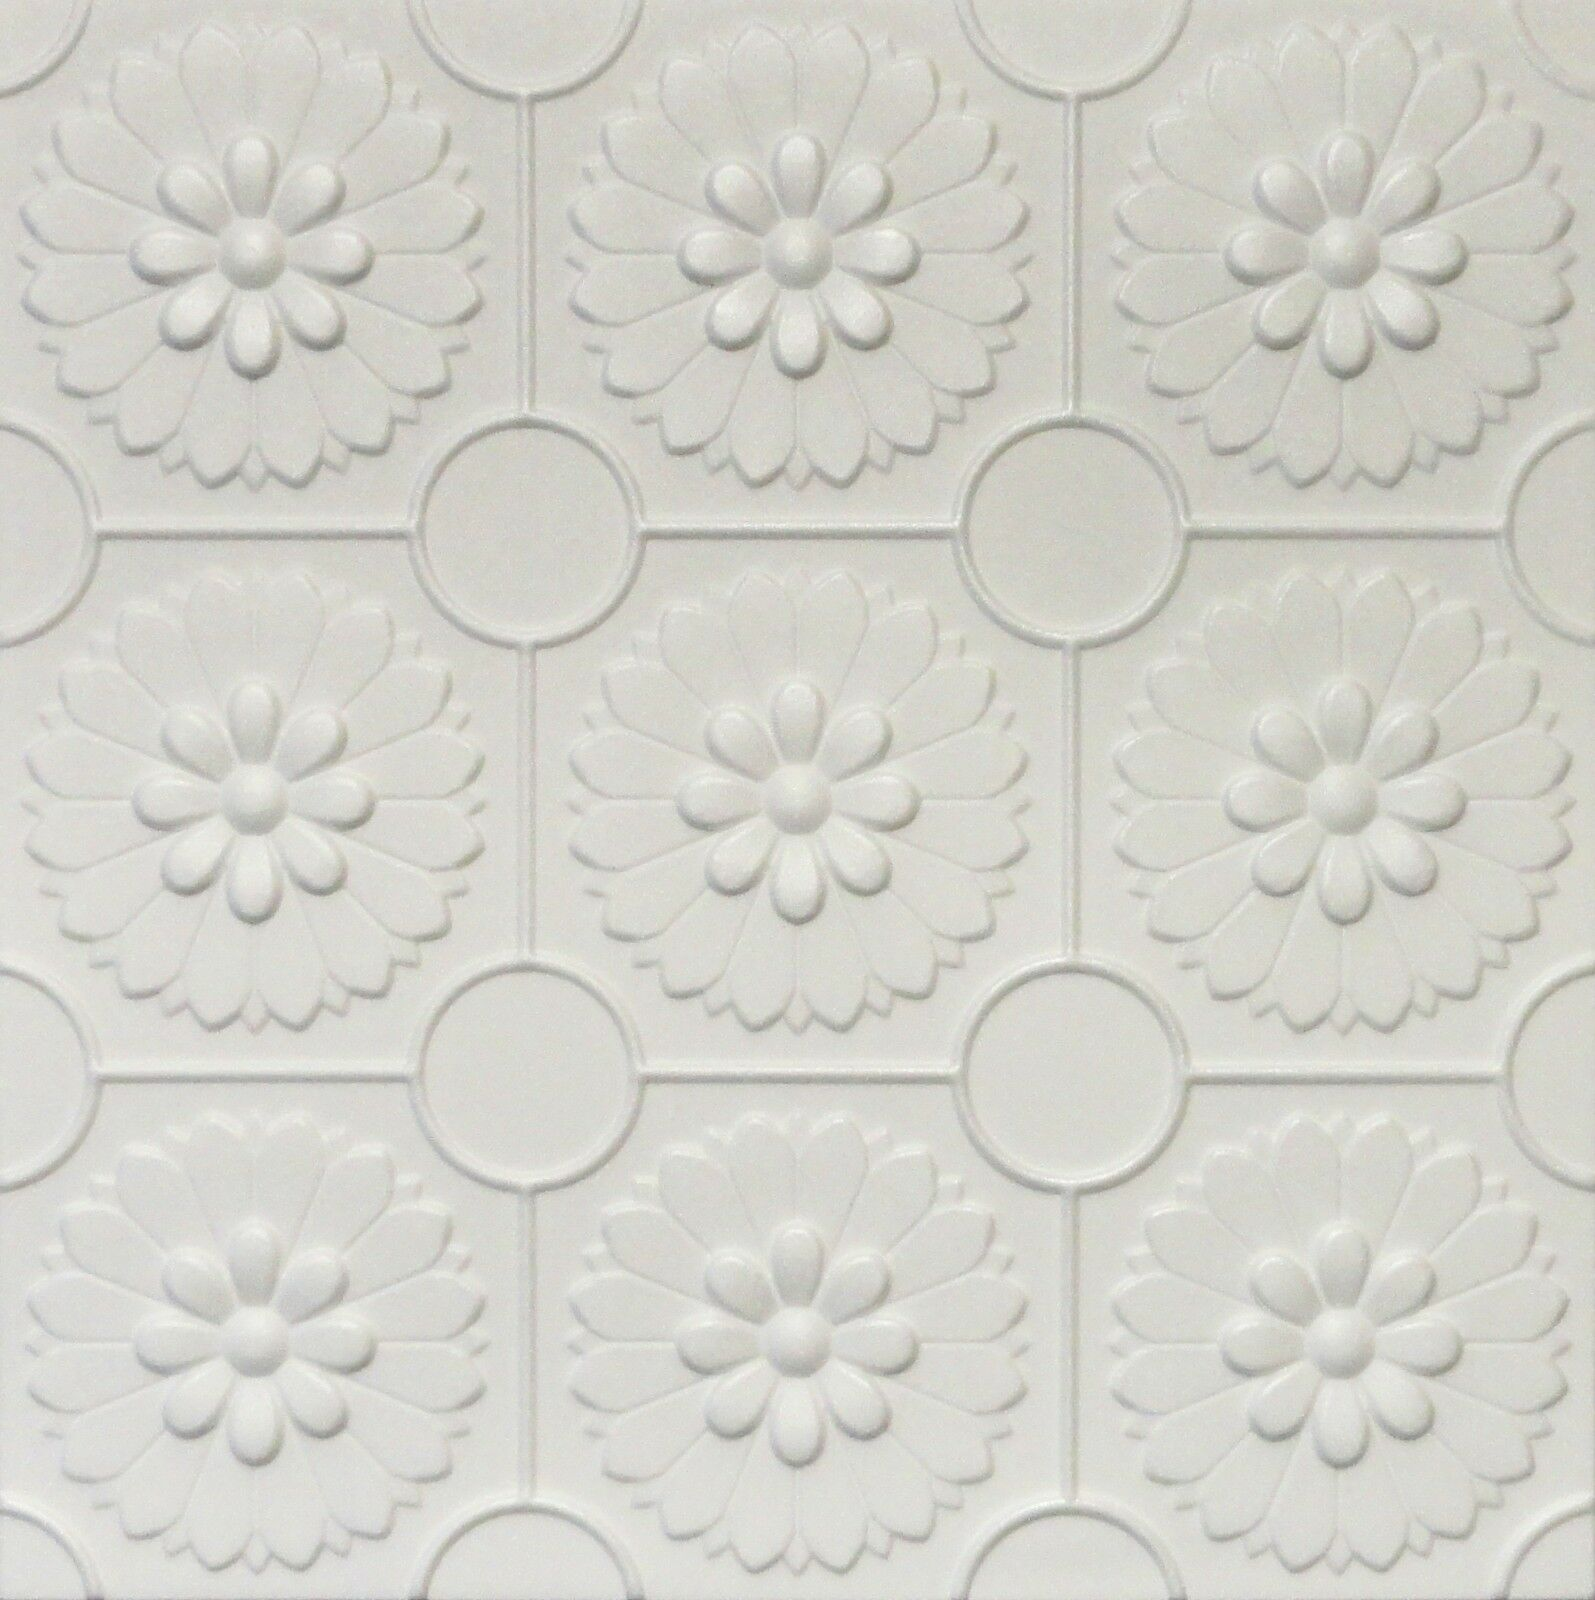 Diy Glue Up White Decorative Ceiling Tiles R36w Ultra Pure White